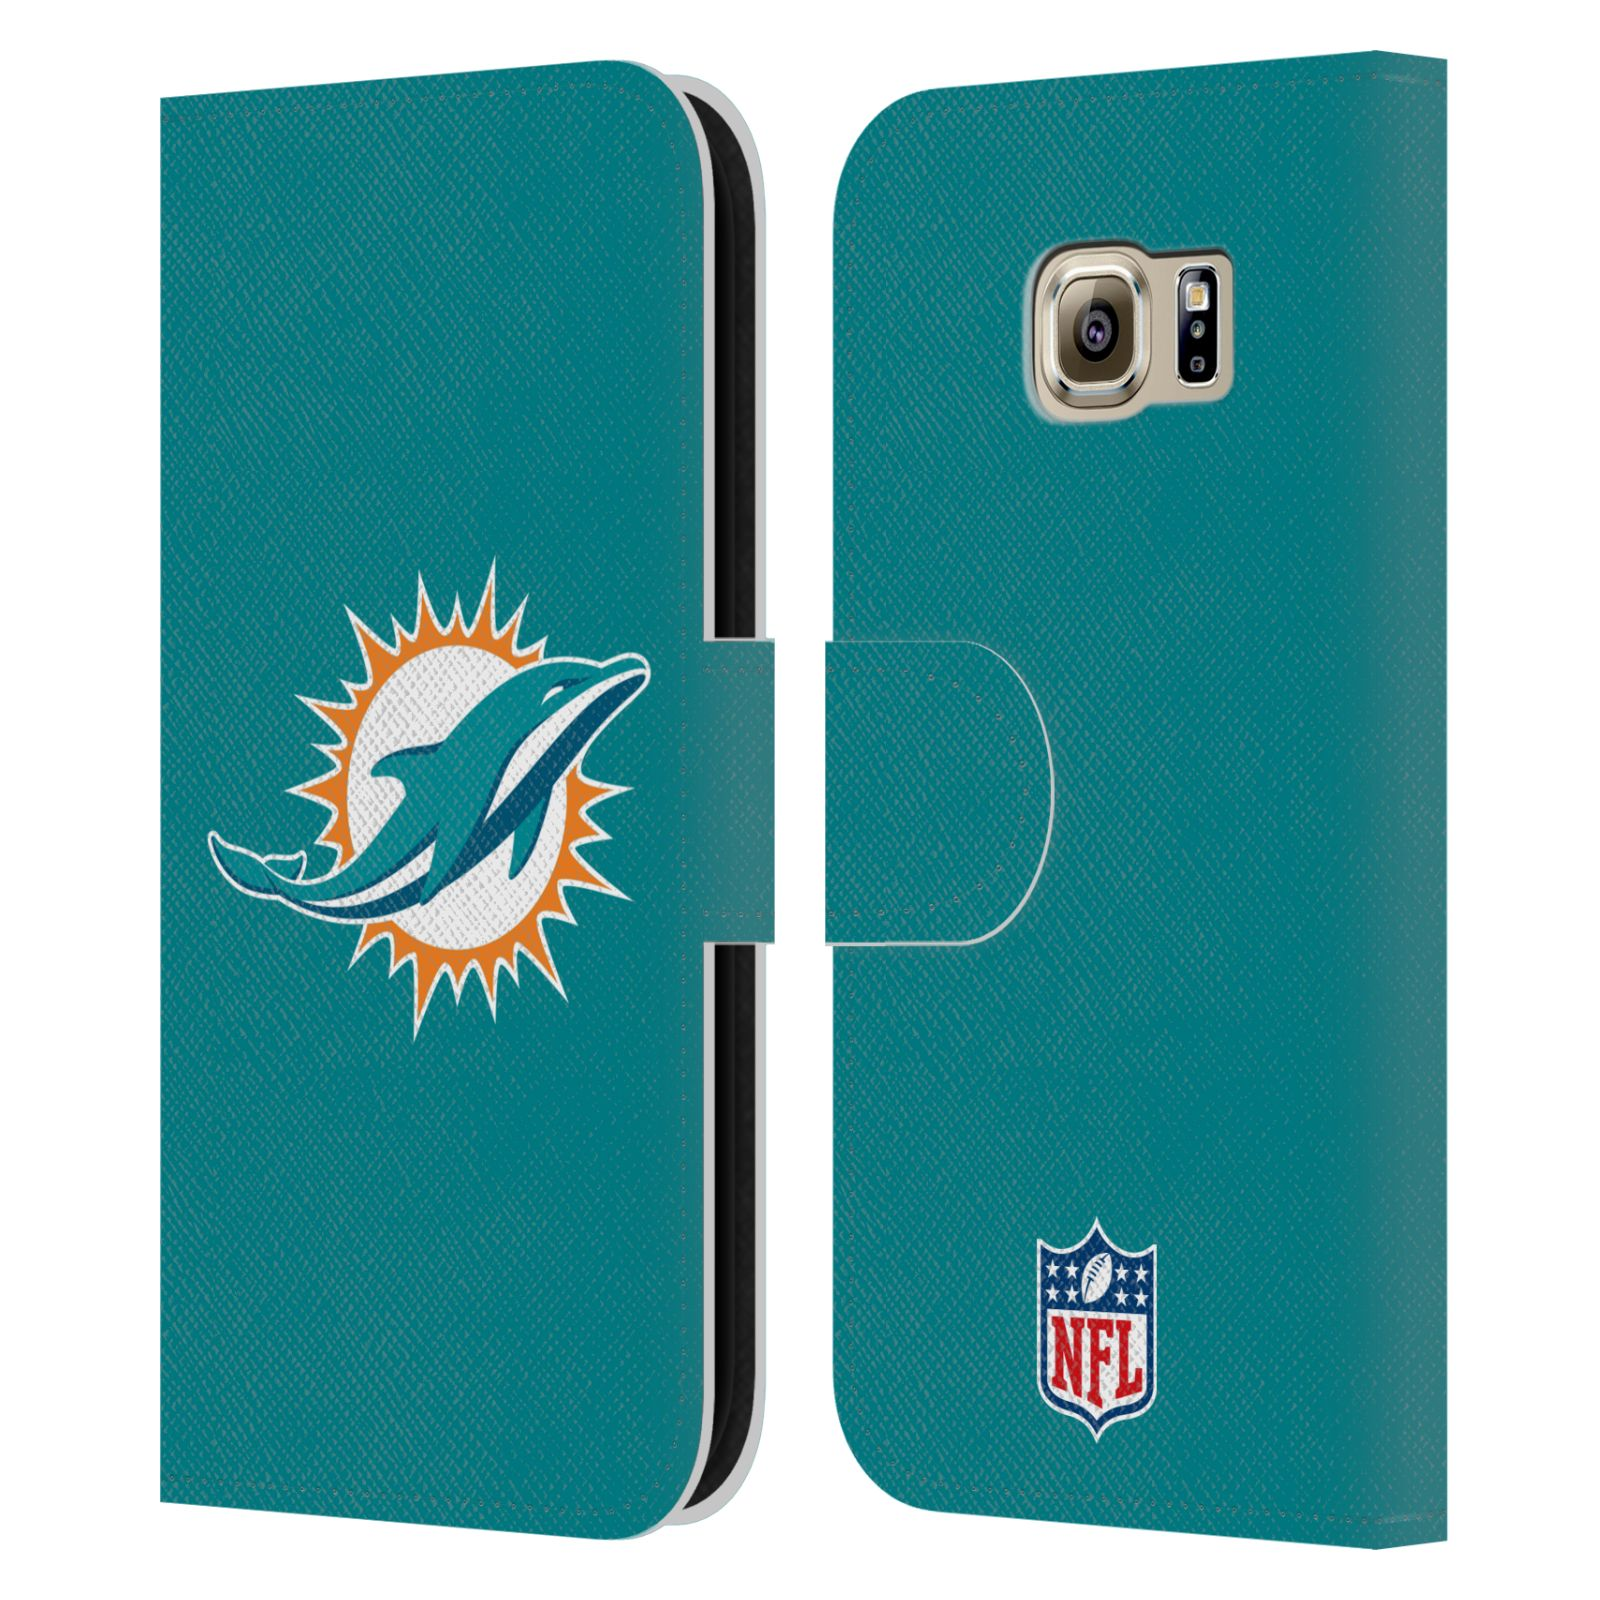 Official Nfl Miami Dolphins Logo Leather Book Wallet Case